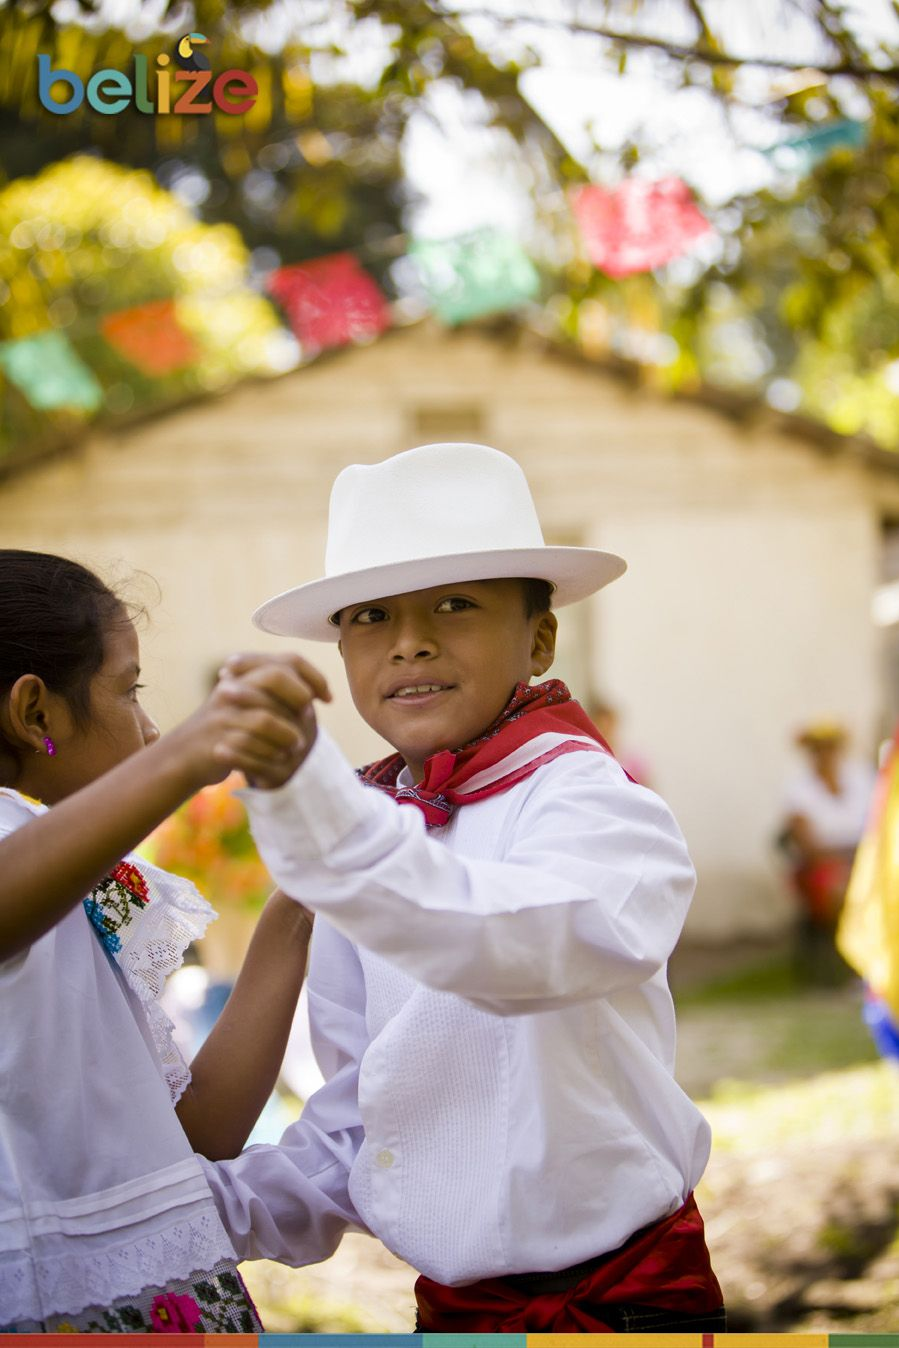 The mestizos of belize are a strong group of people still practicing their traditional dances